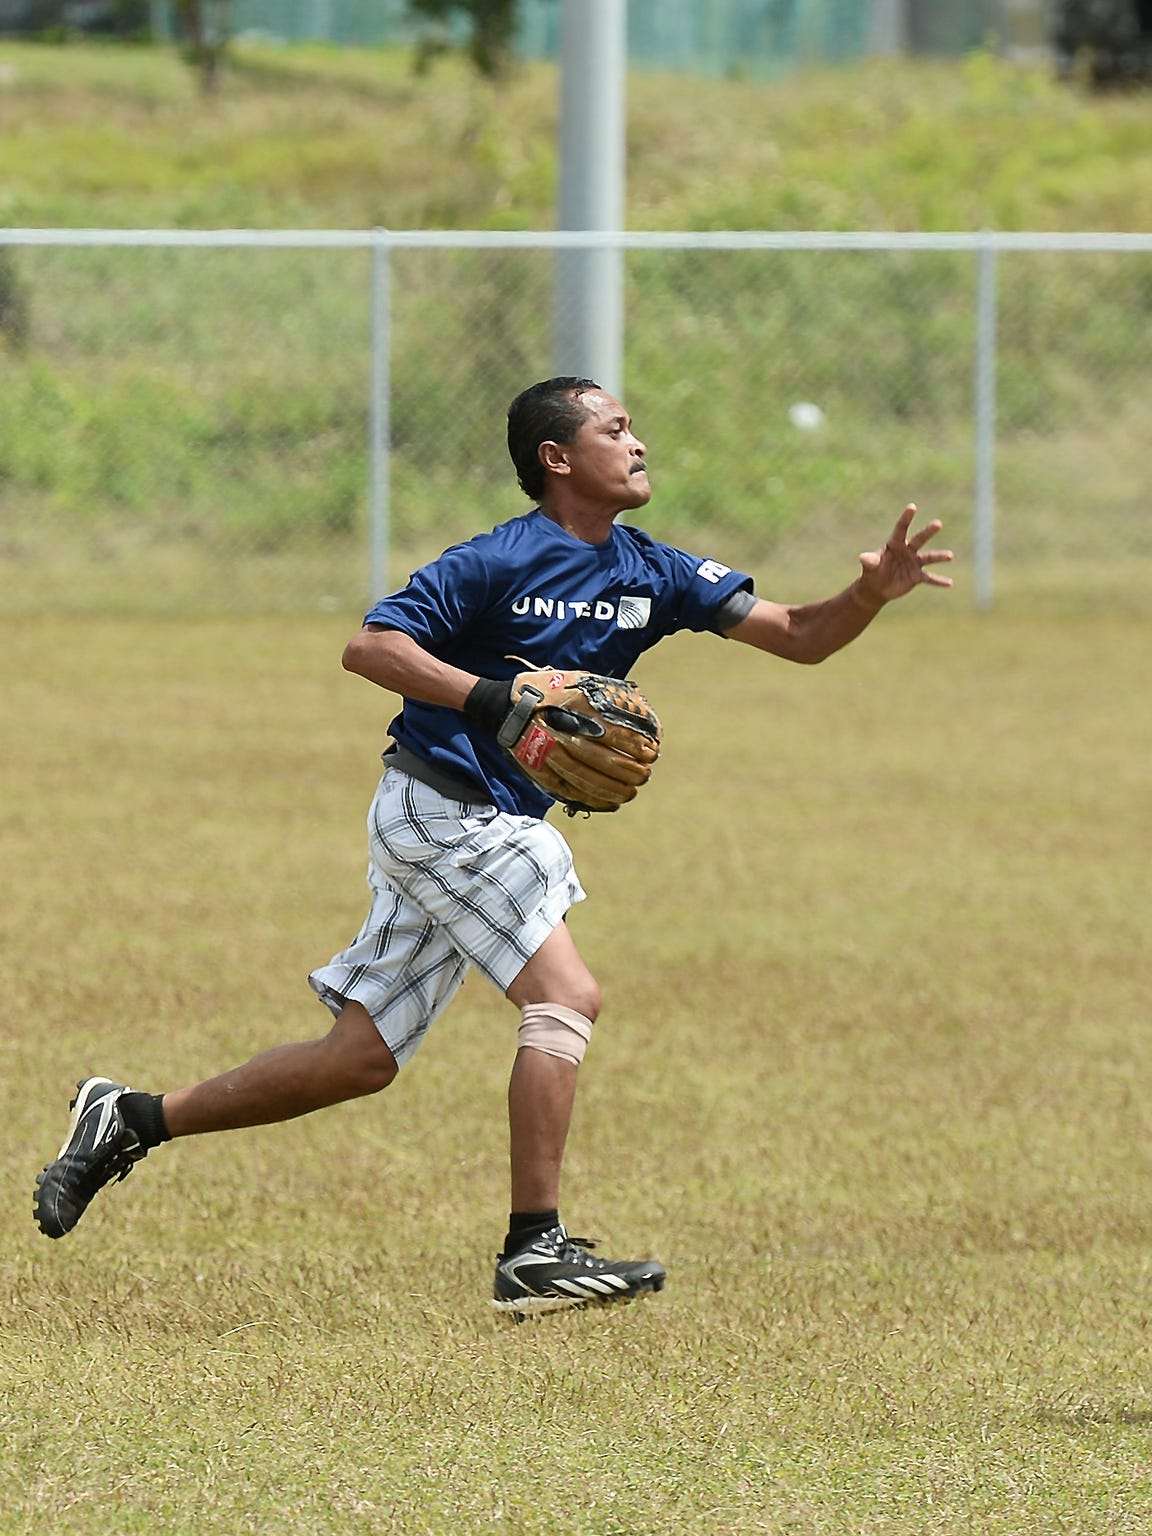 The United Flyers took on the Docomo Reds for their